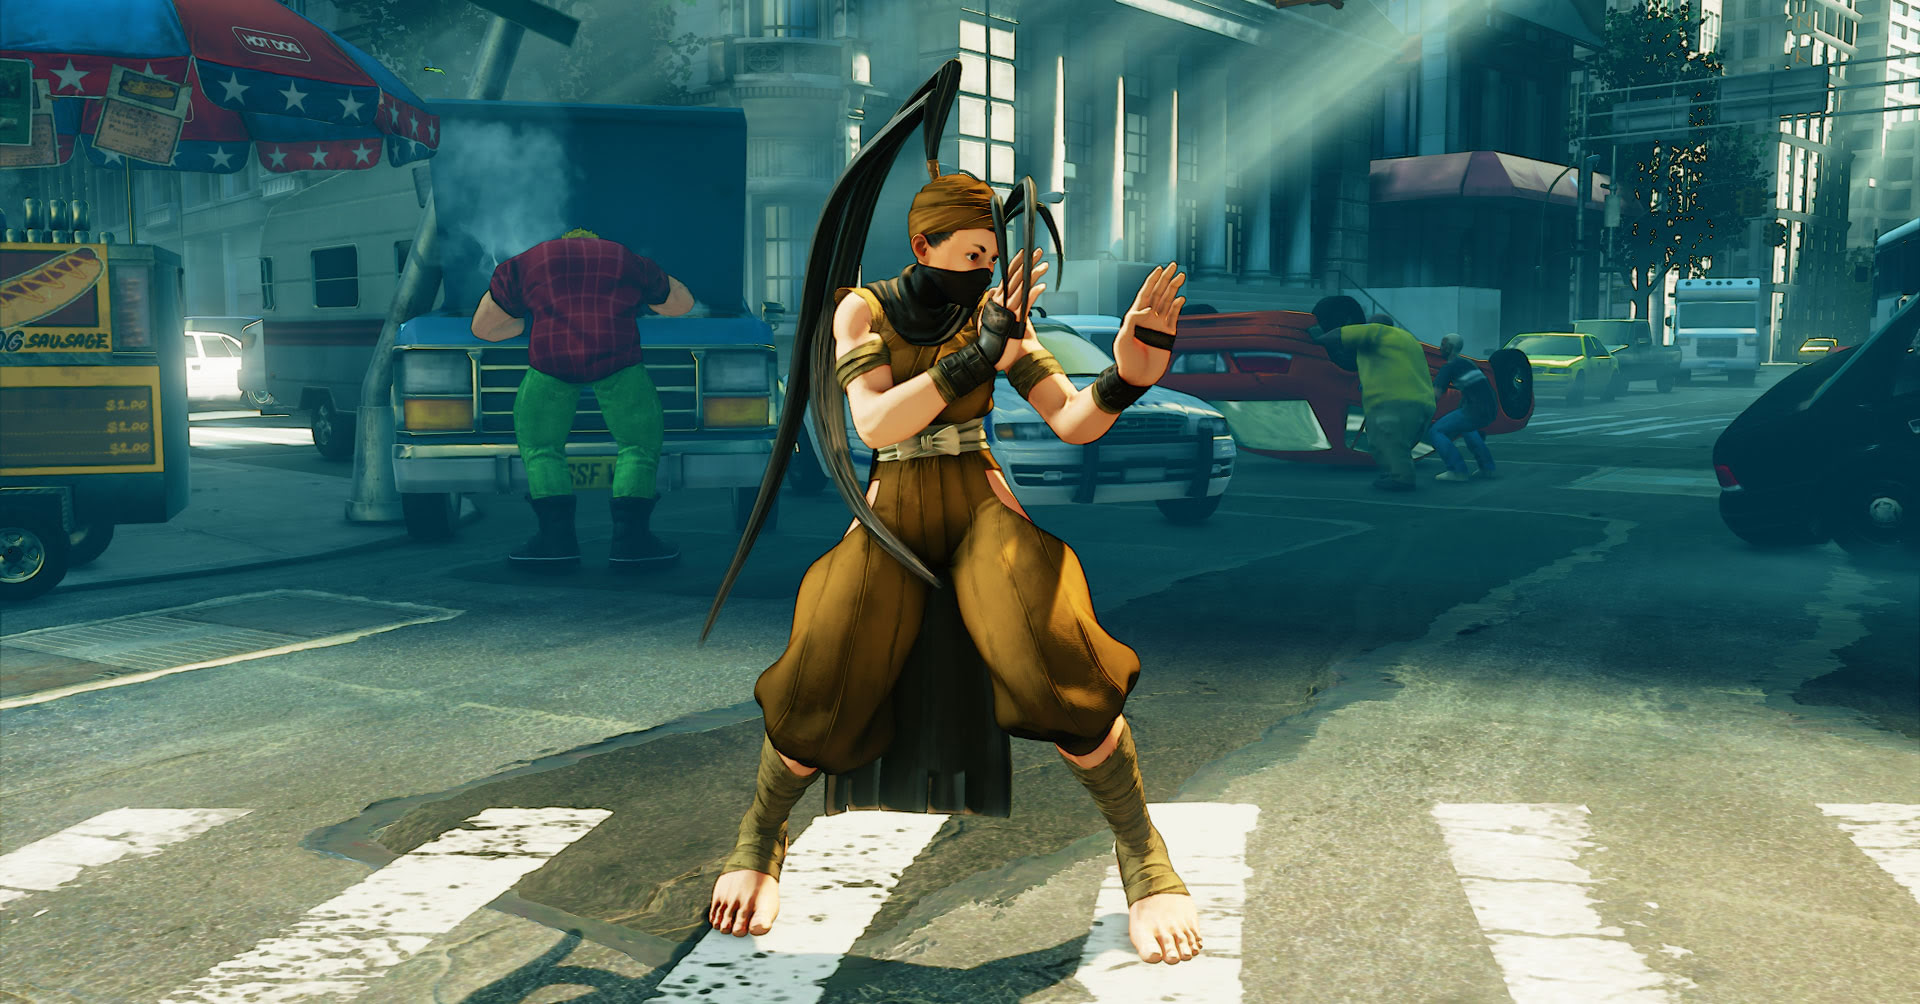 Nostalgia DLC heading to Street Fighter V screenshot